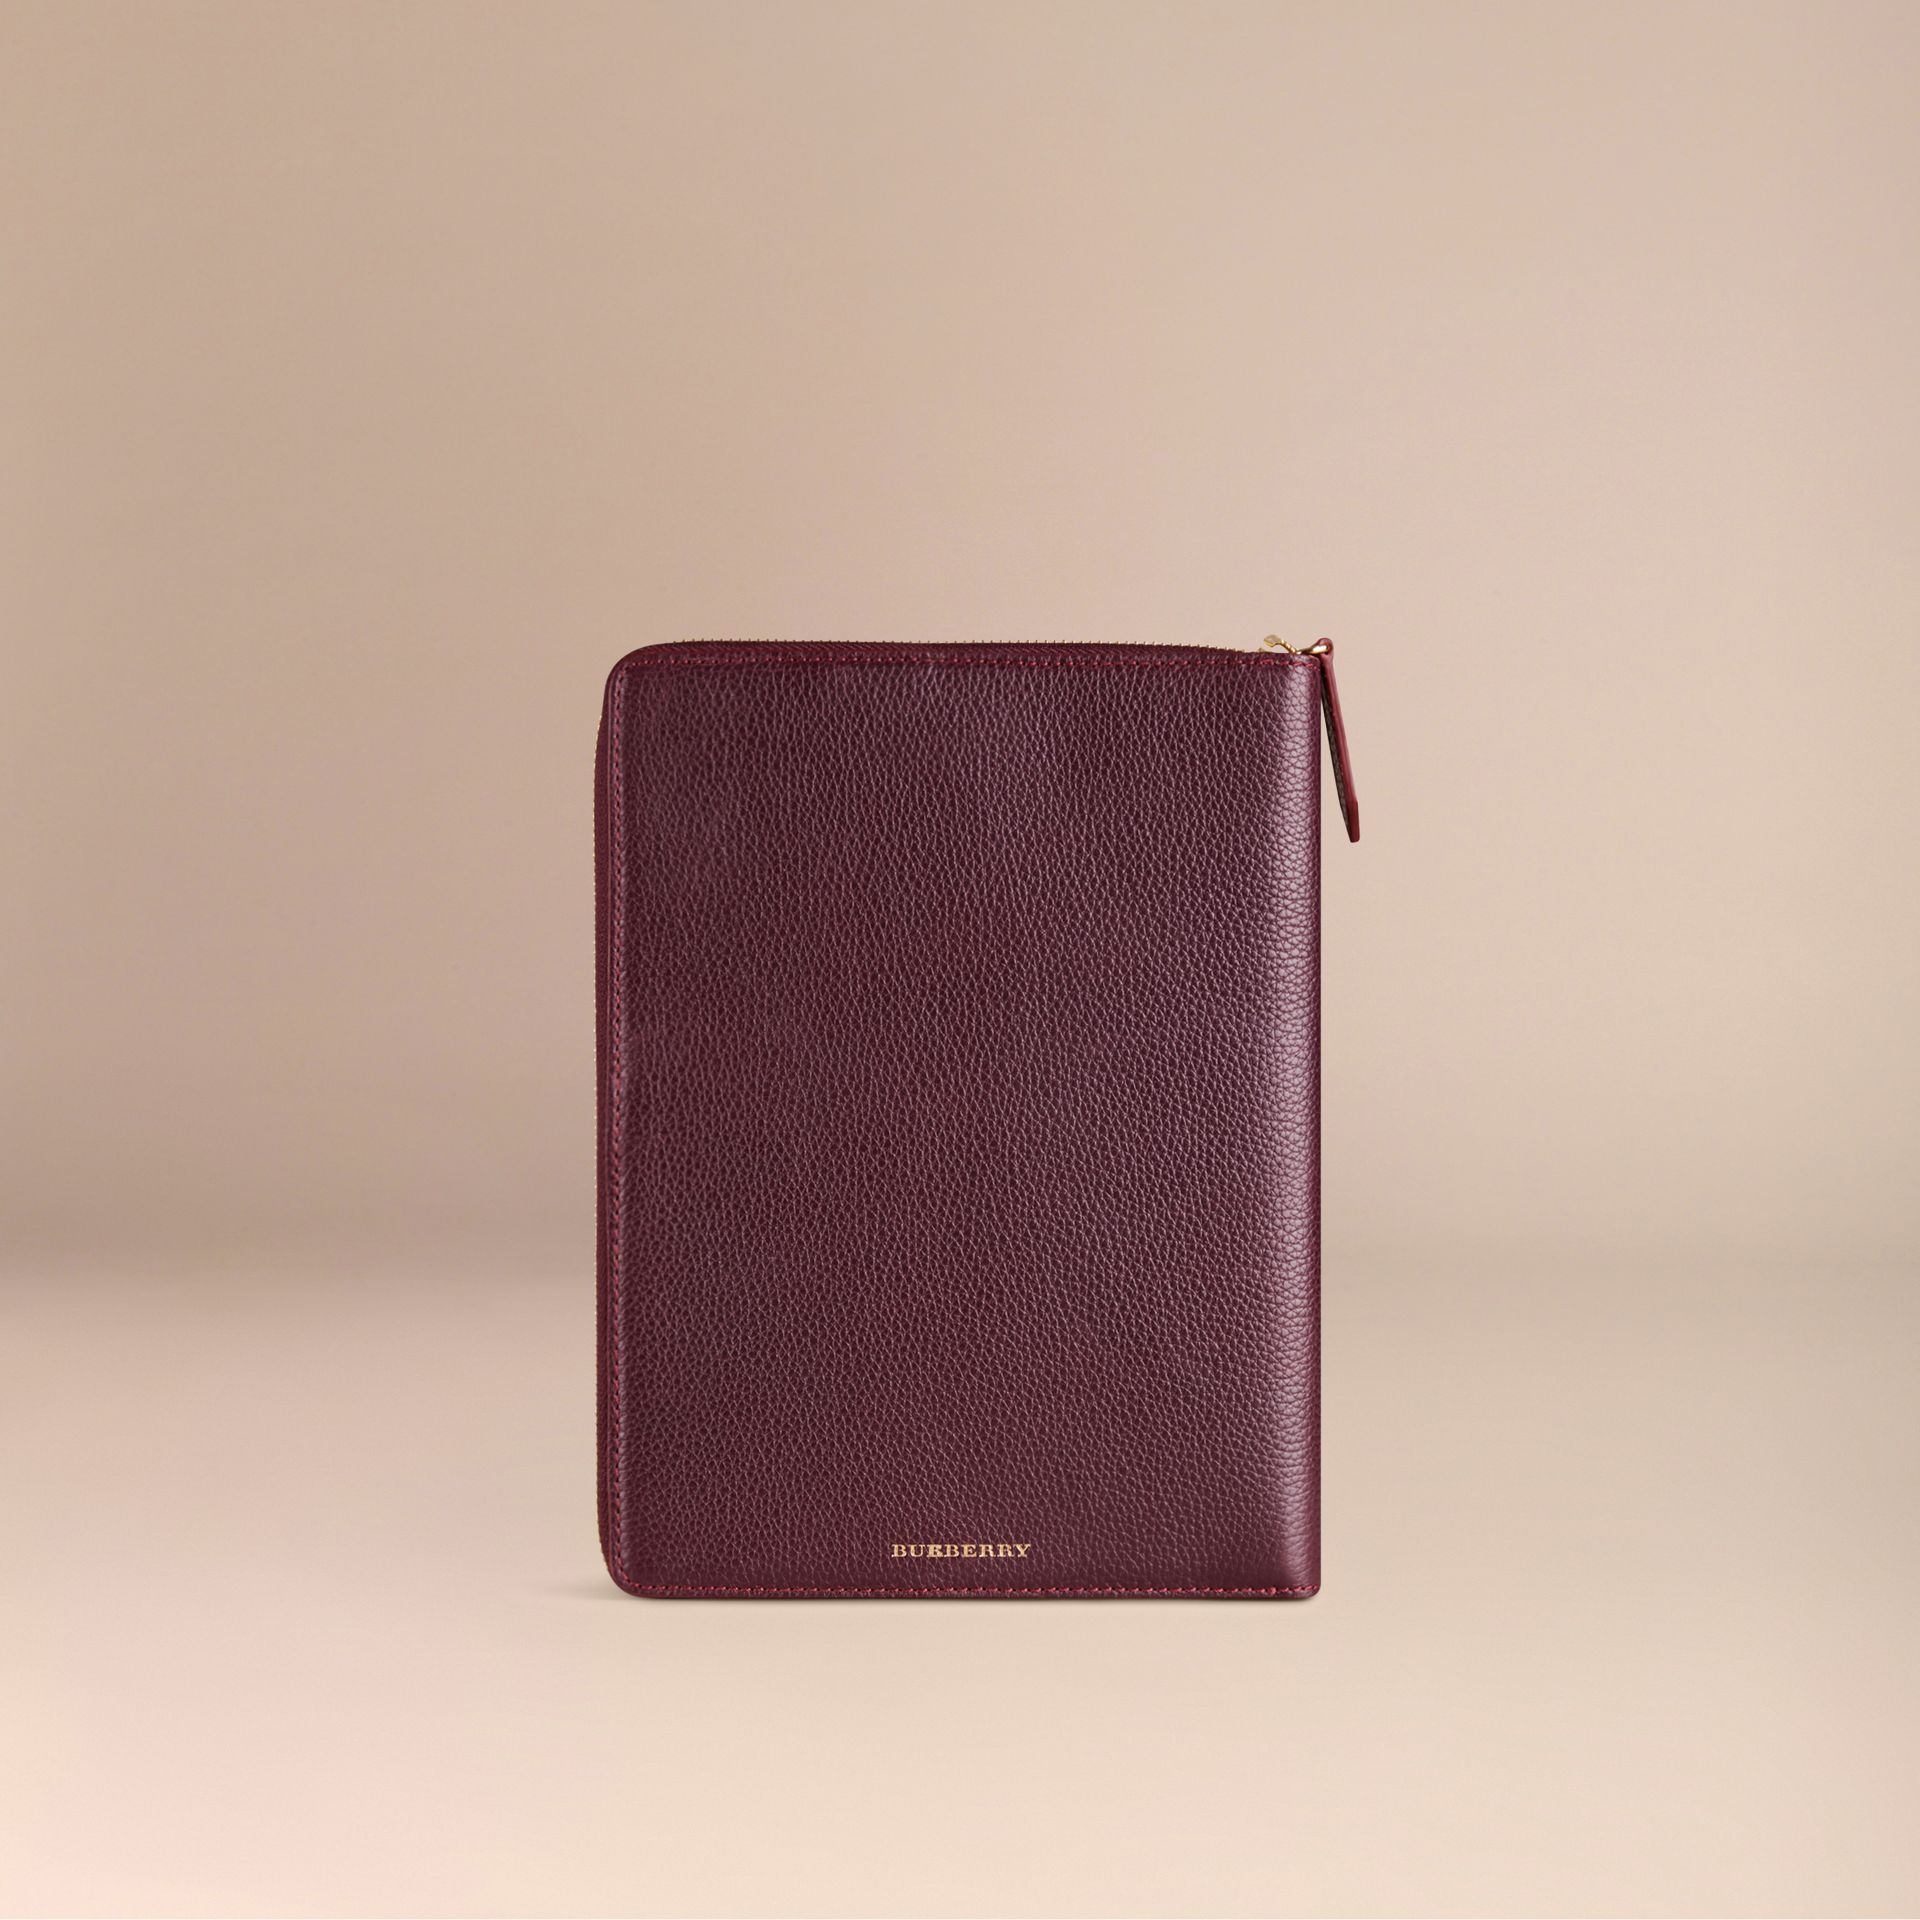 Dark amethyst Ziparound Grainy Leather 18 Month 2016/17 A5 Diary Dark Amethyst - gallery image 3